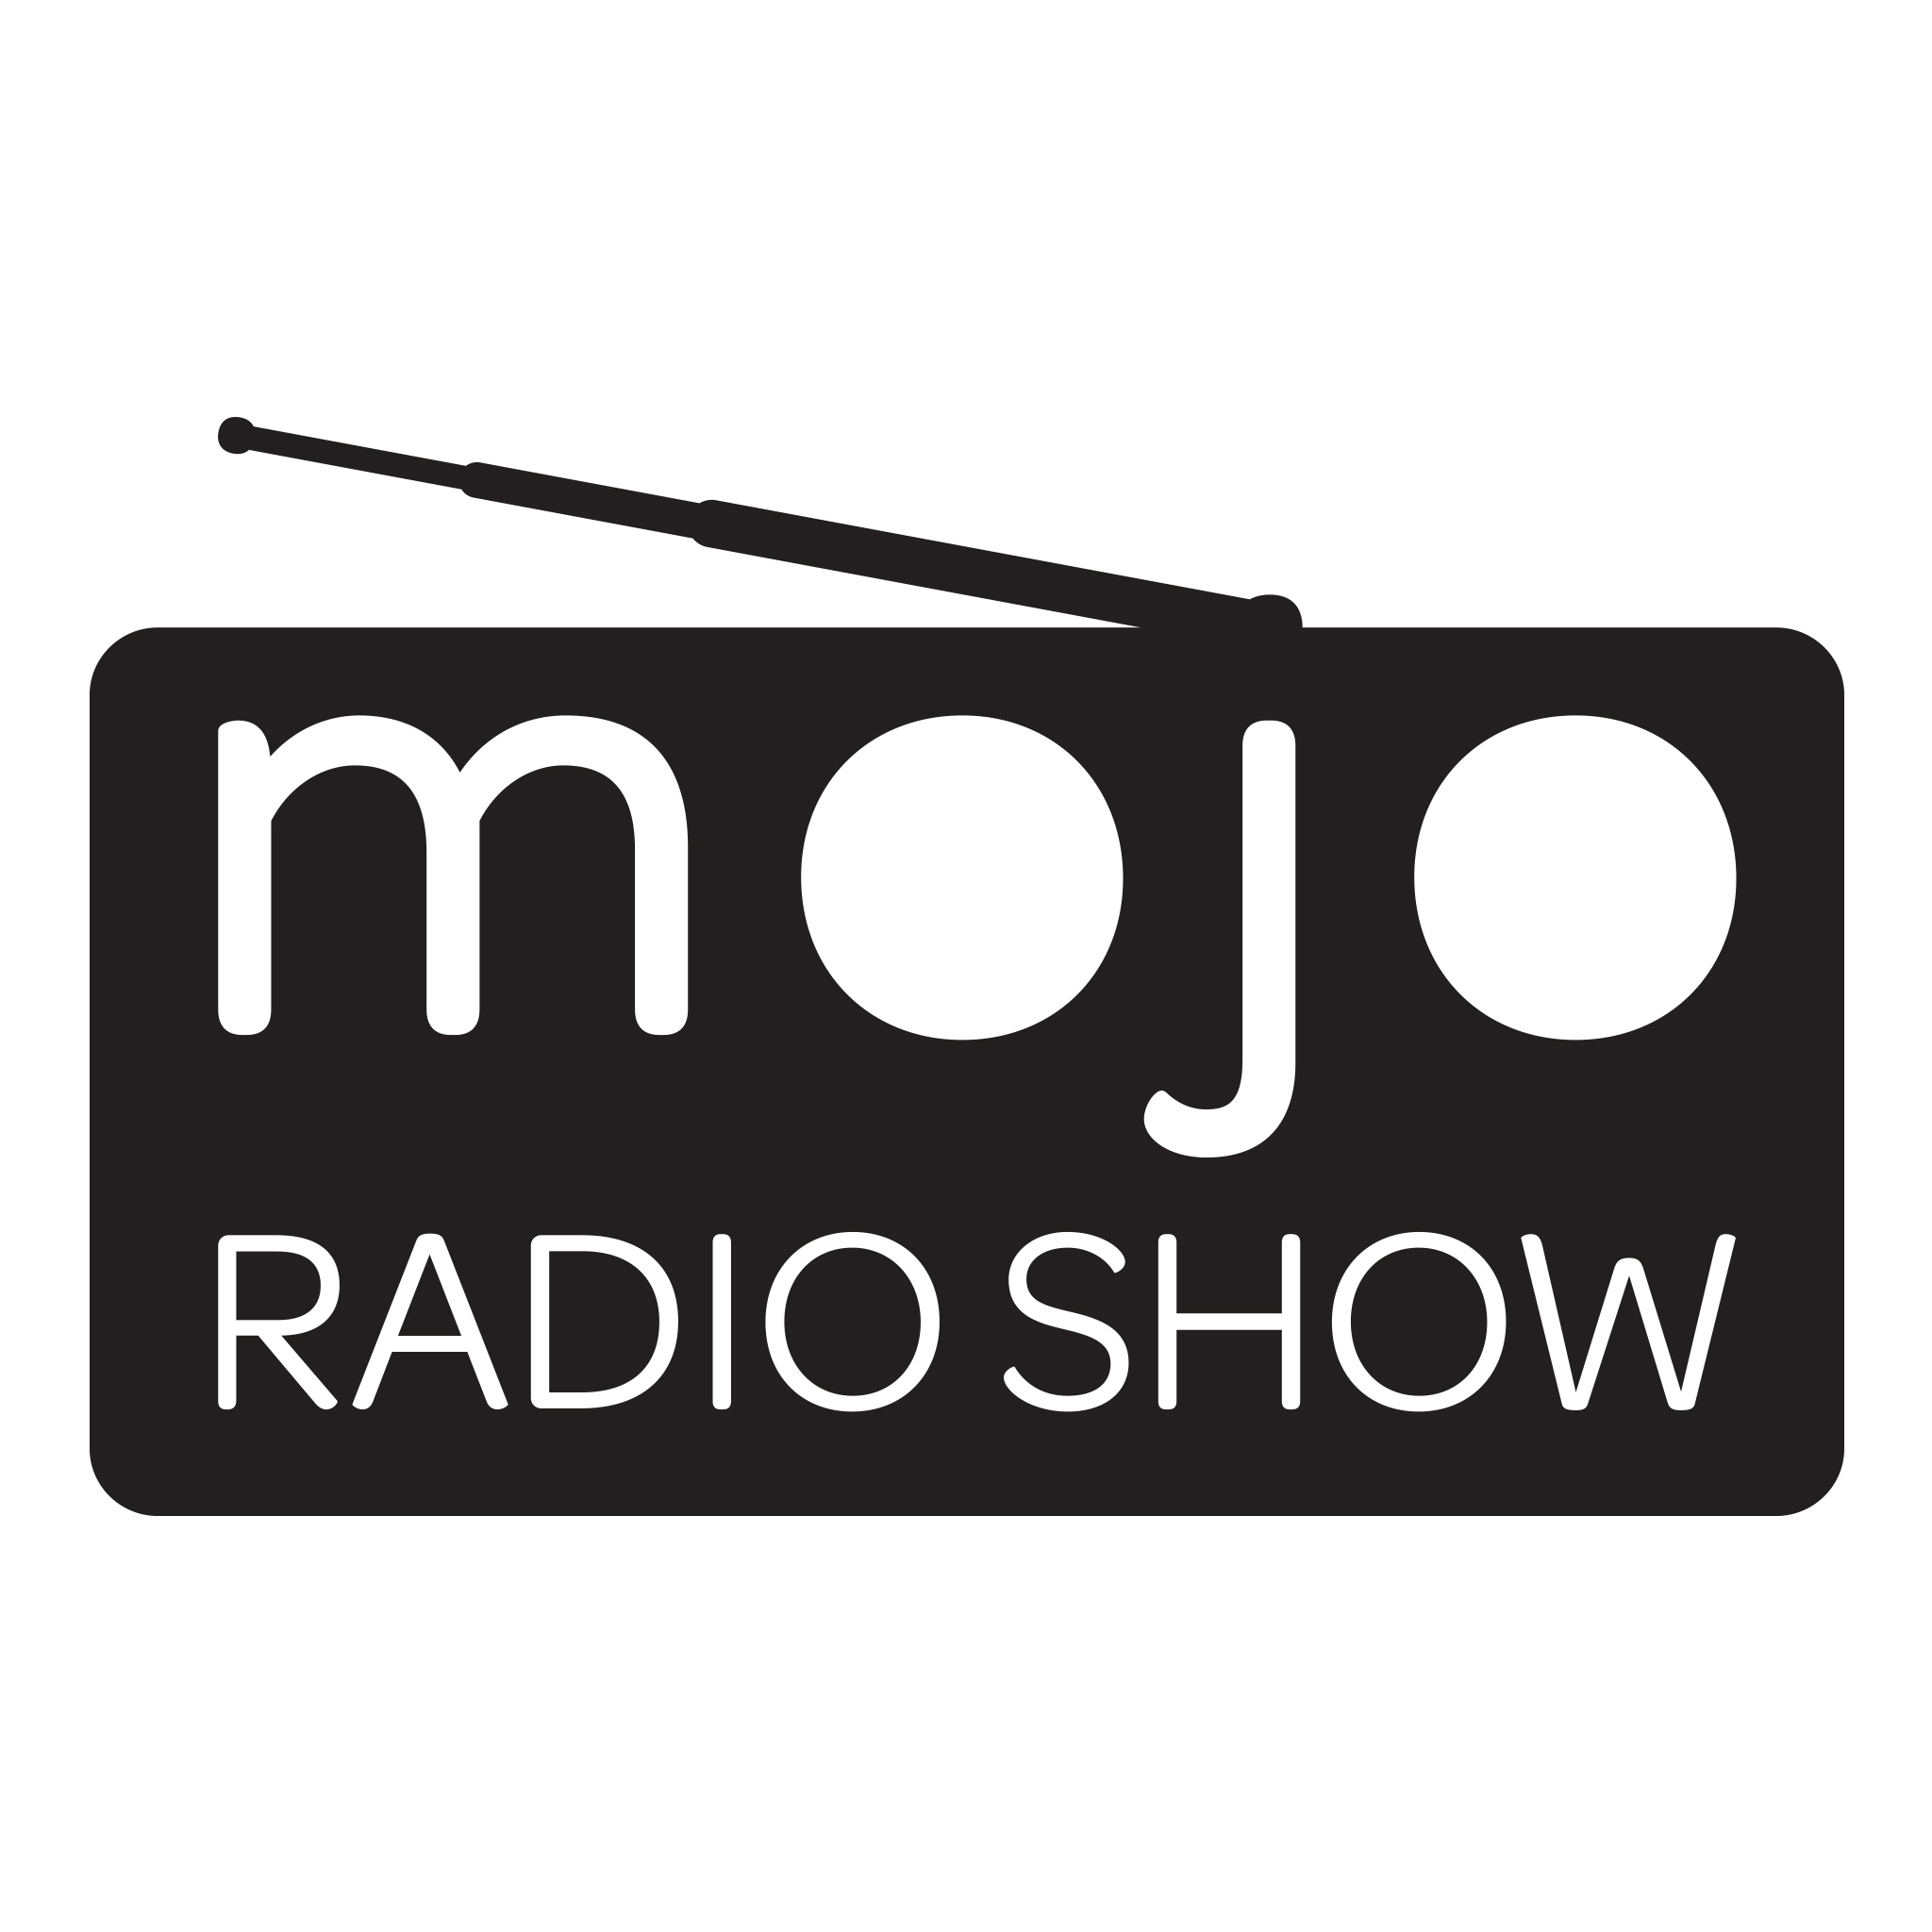 Artwork for The Mojo Radio Show EP 160: Building Your Future, Getting Beyond What's Holding You Back - Lukas Schwekendiek